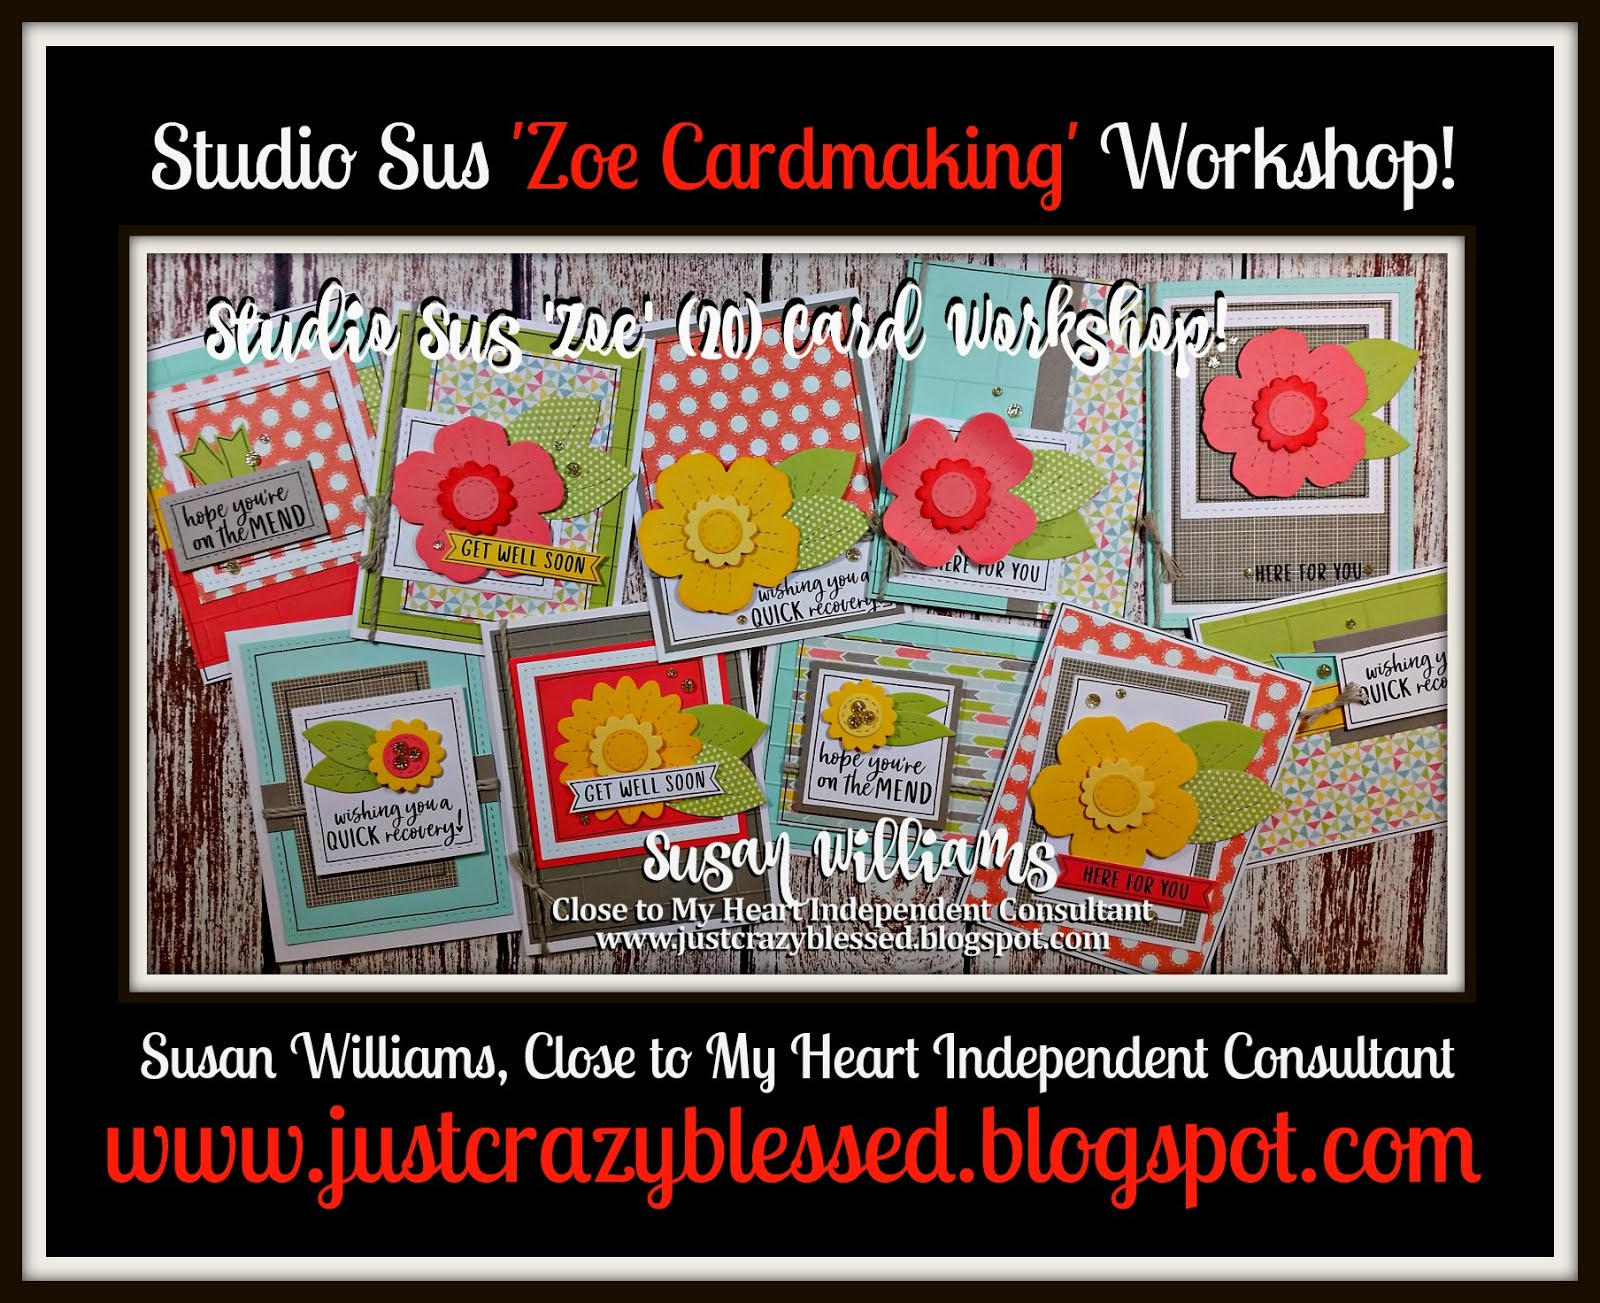 'Zoe' Cardmaking Workshop!